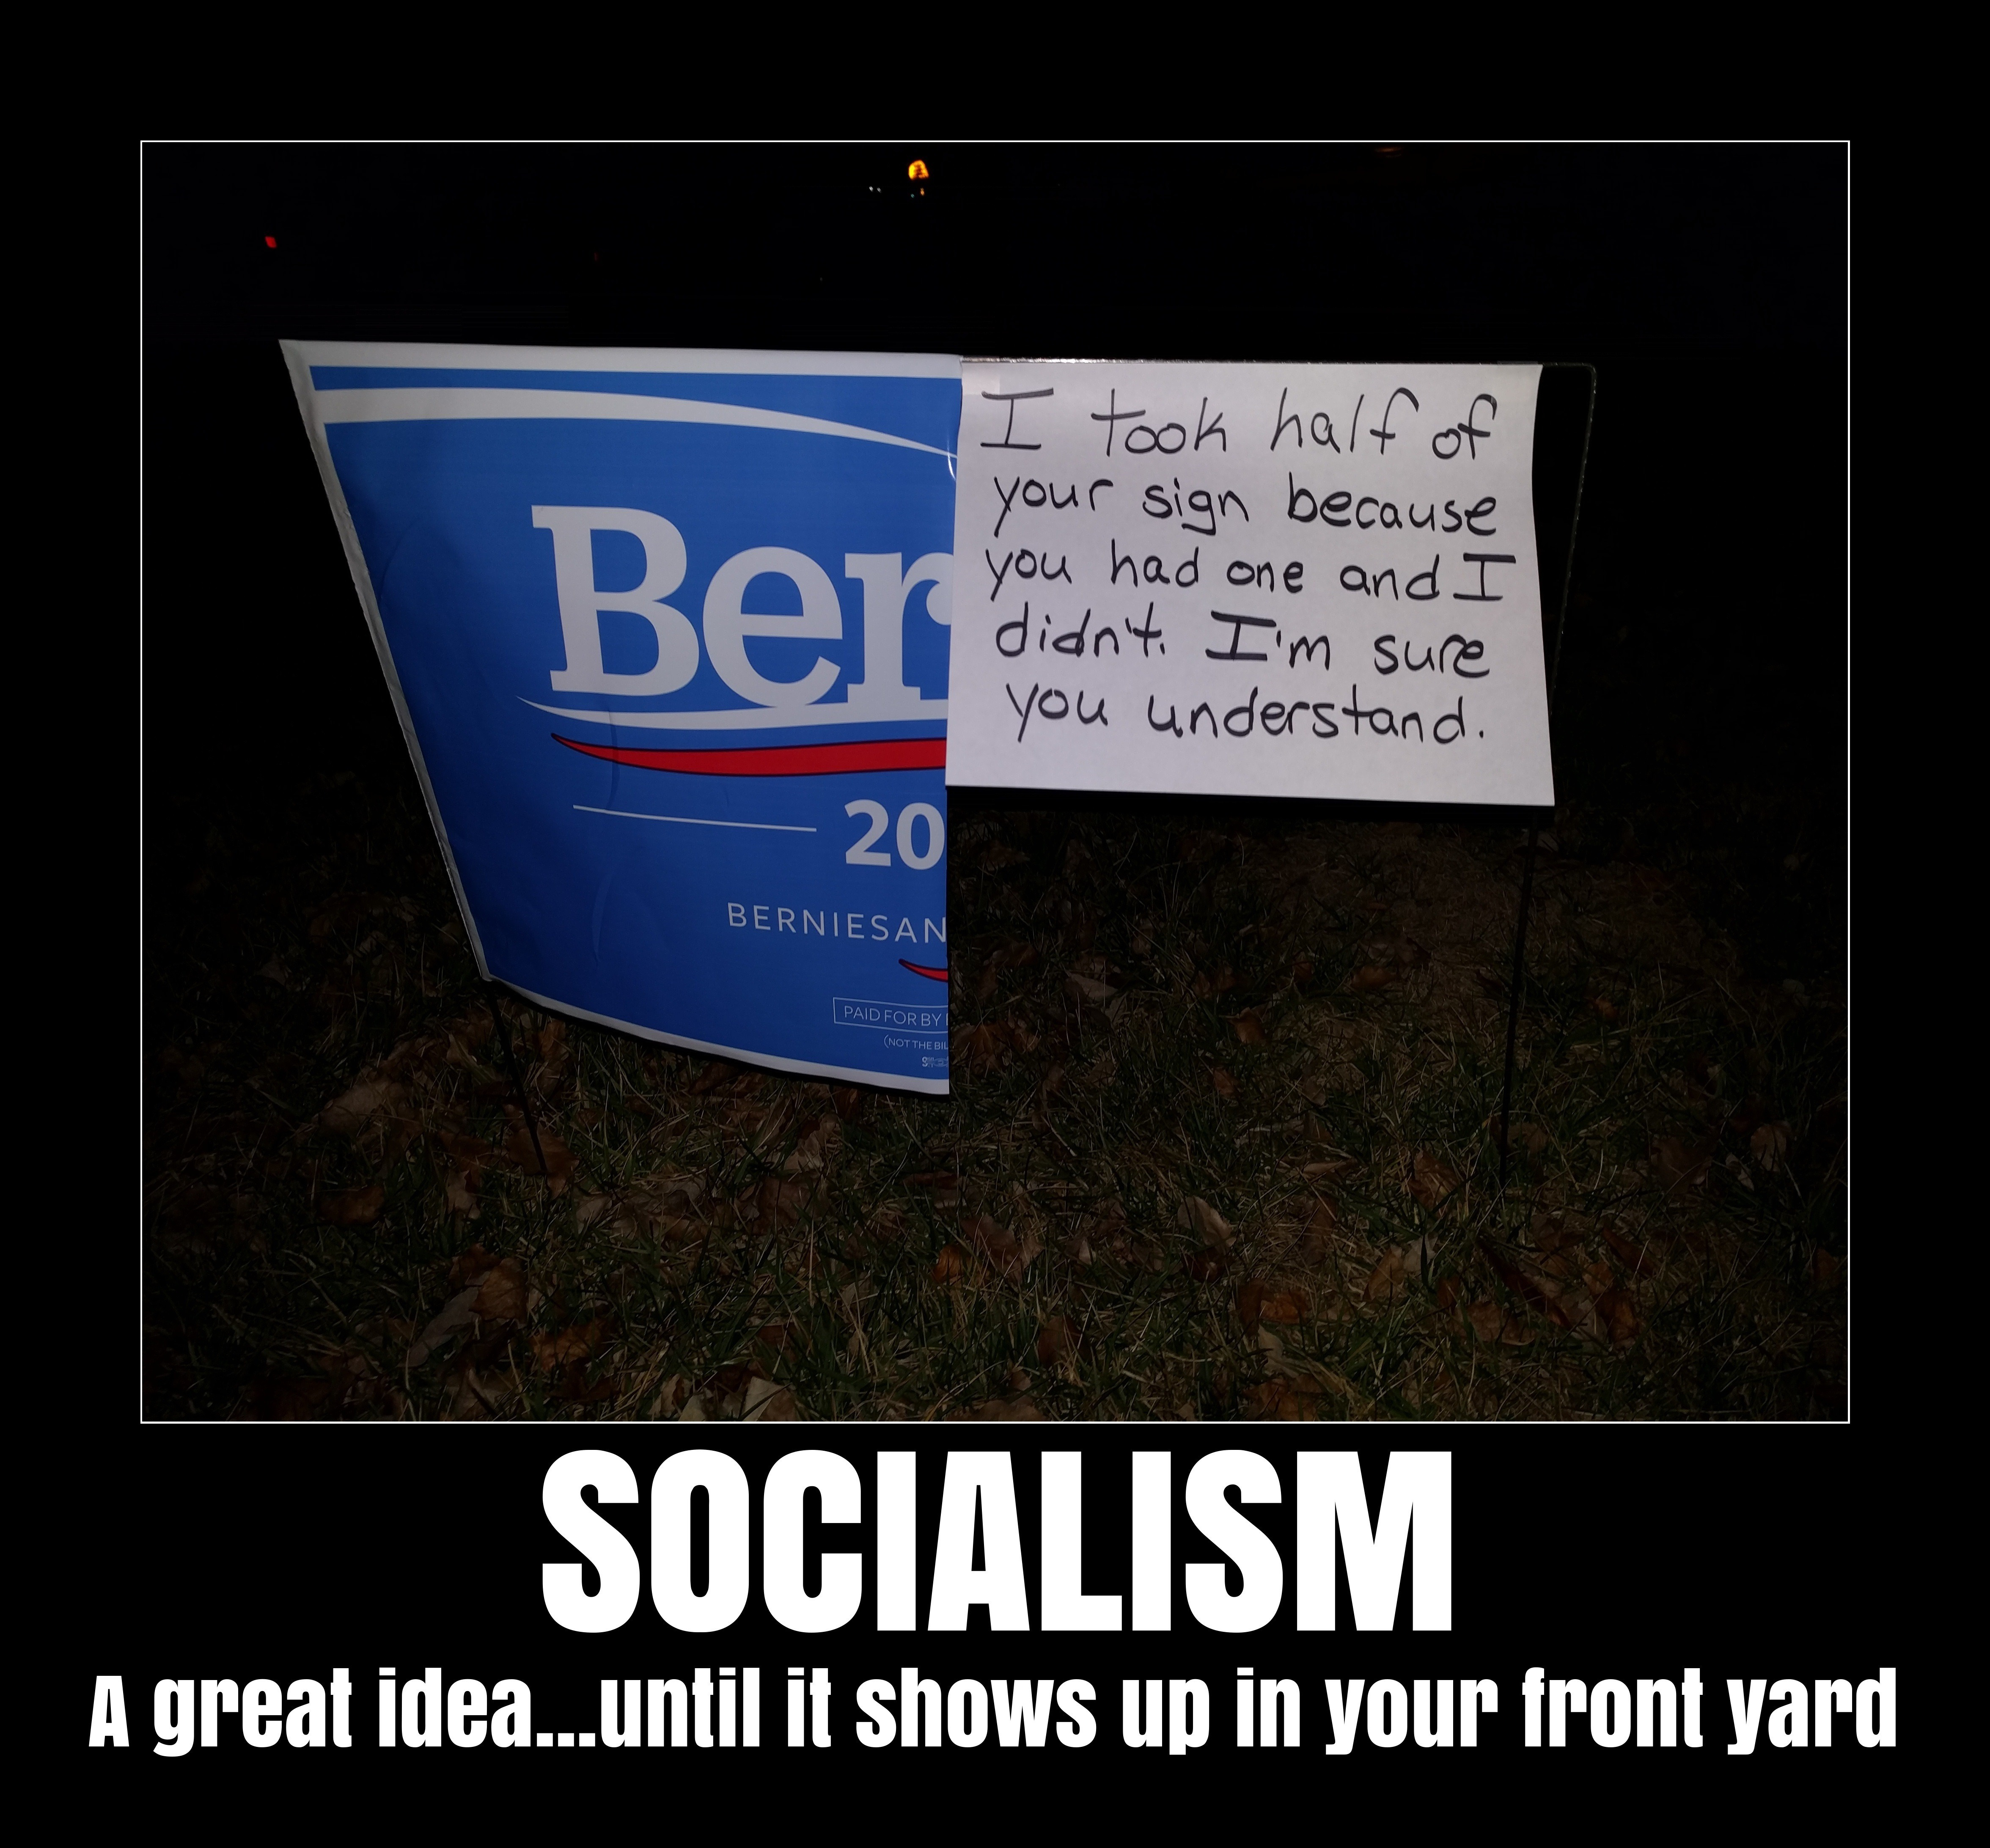 bernie sign illinois